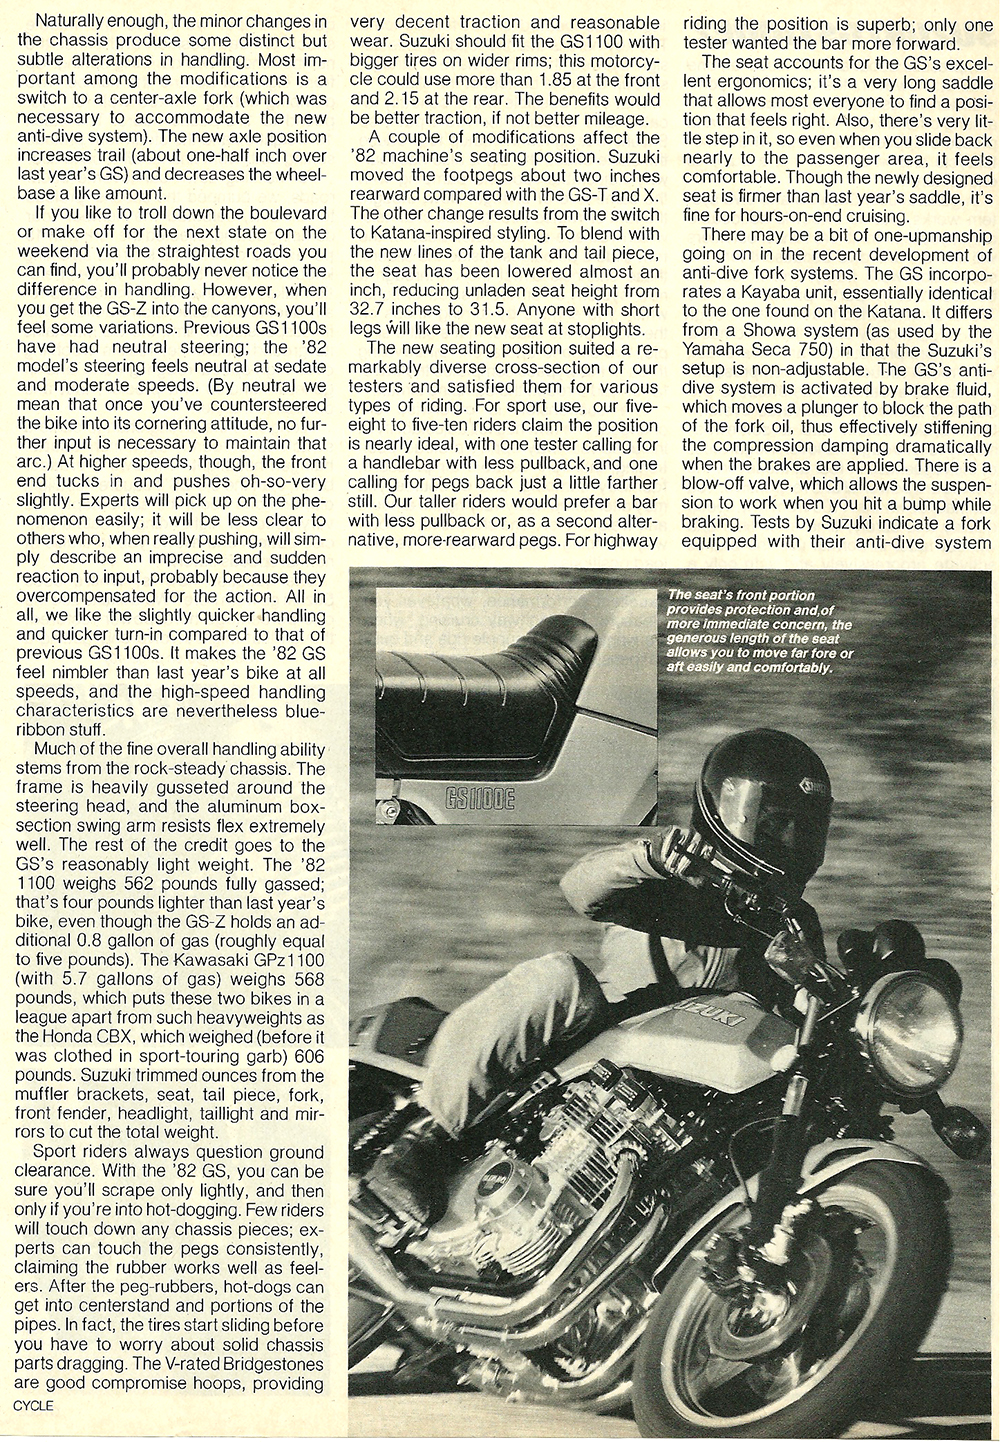 1982 Suzuki GS1100EZ road test 06.jpg